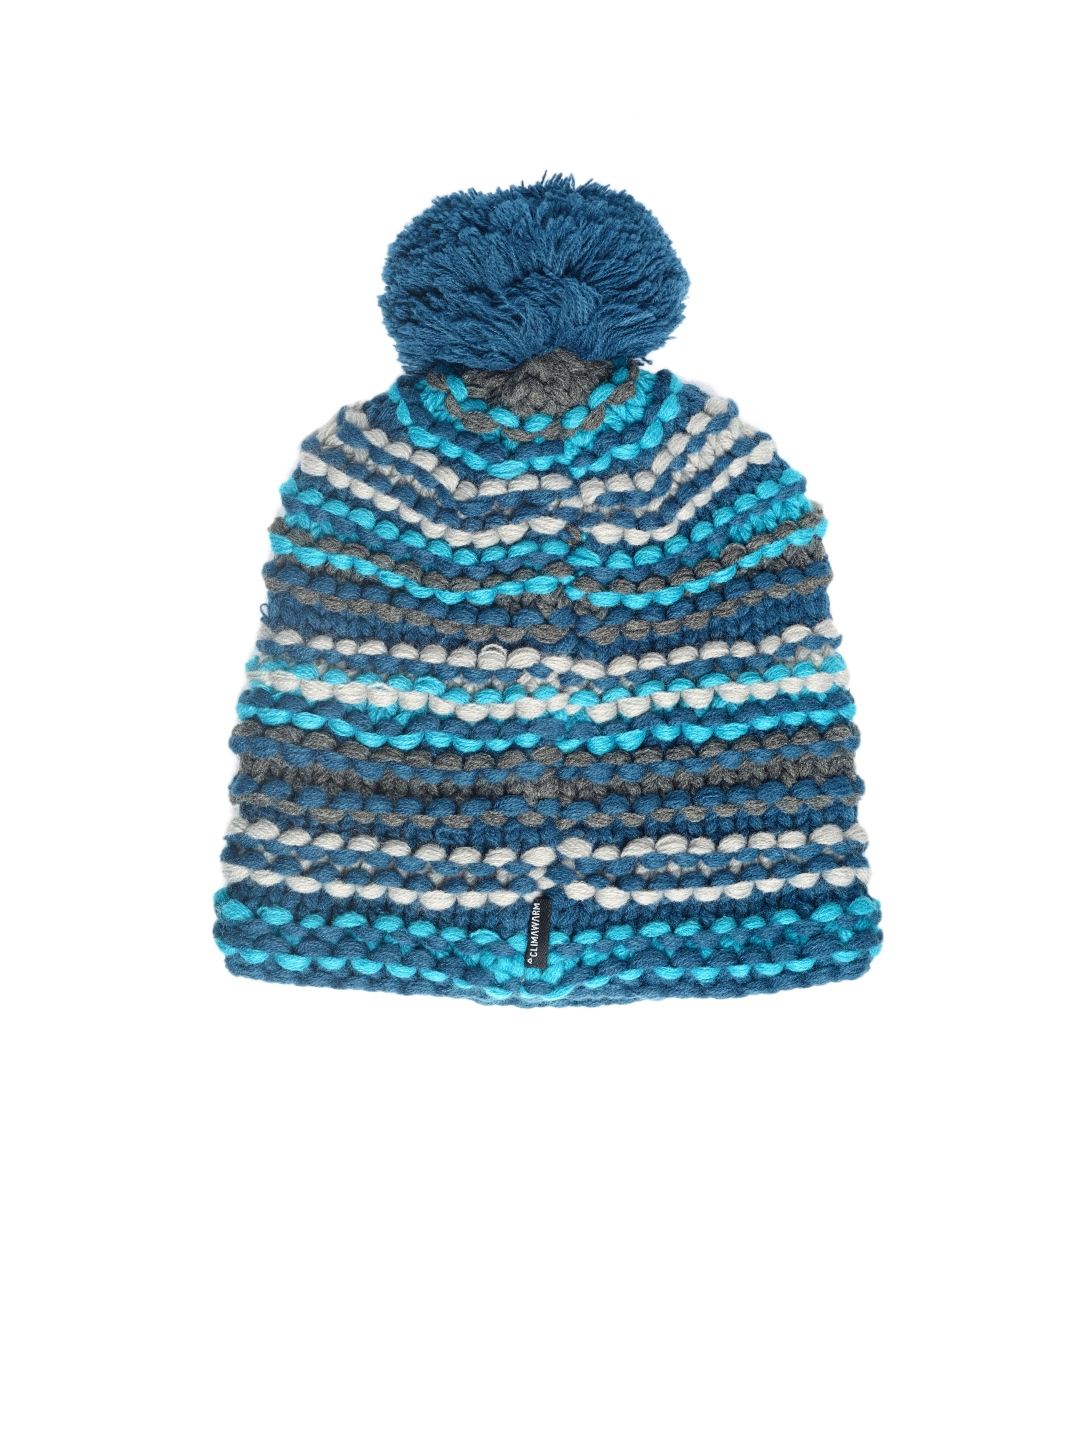 Buy Adidas Girls Blue YA Chunky Knit Beanie - Caps for Girls 2061204 ... aafa925fbf